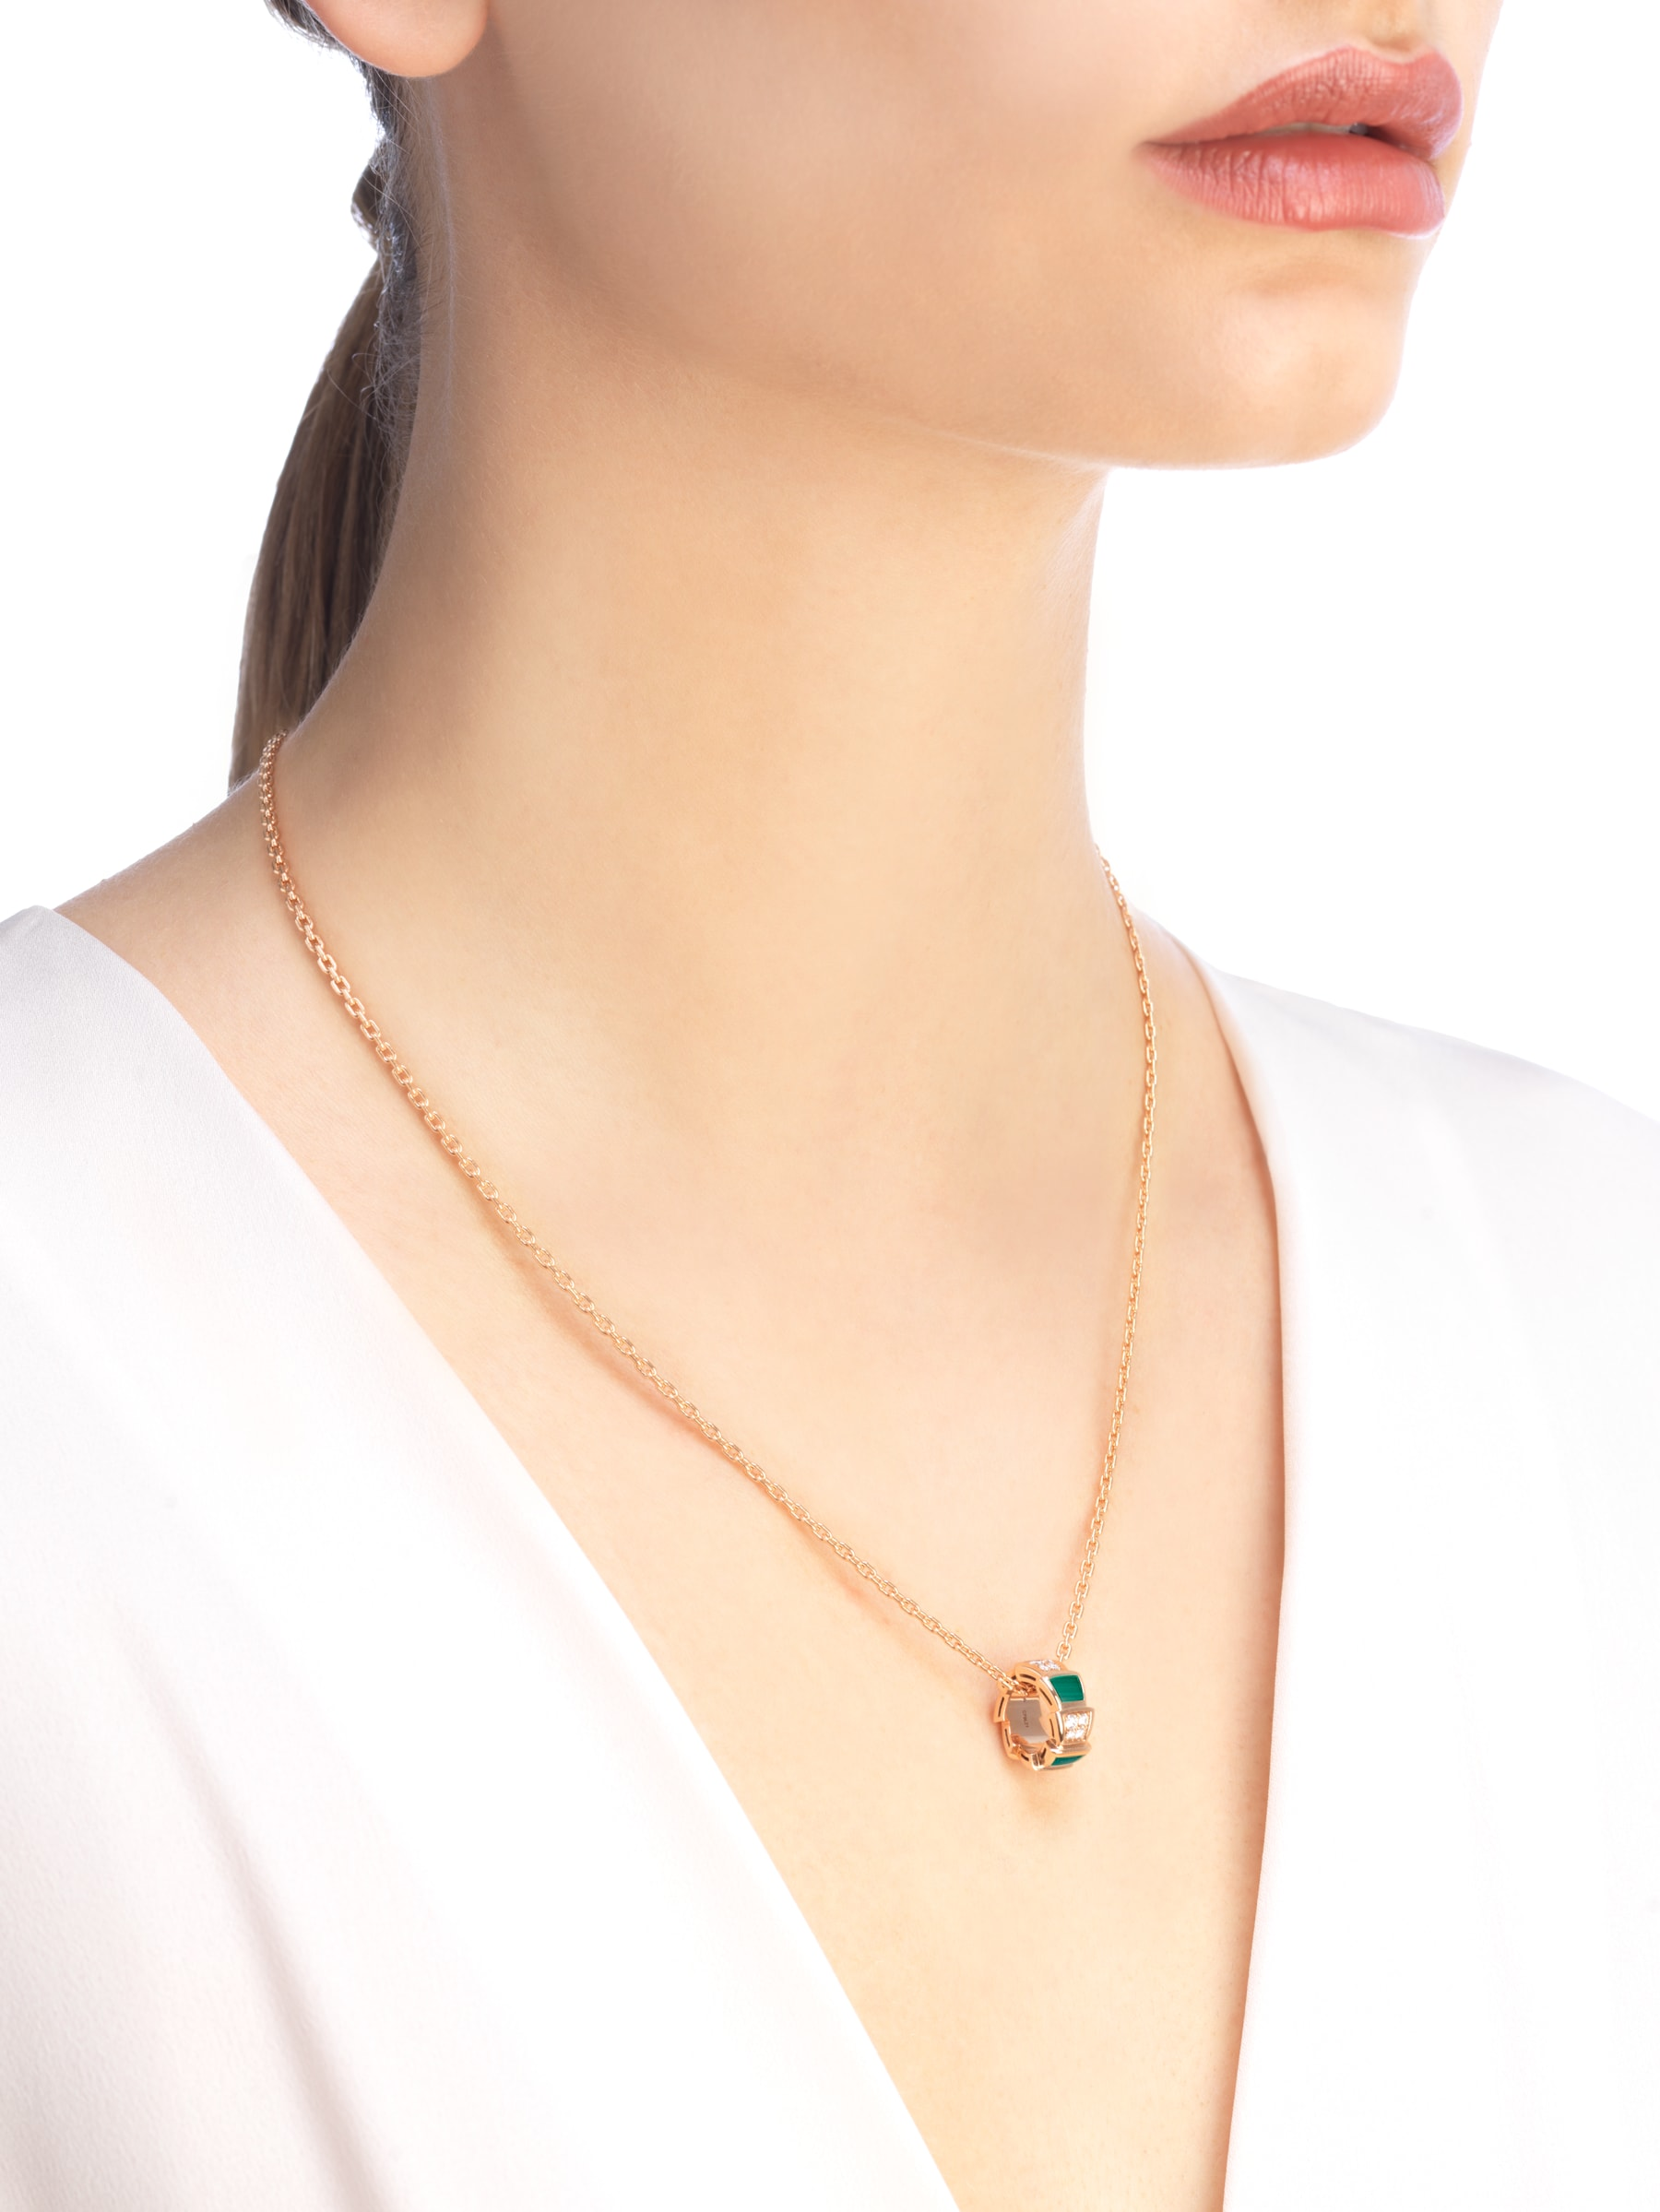 Serpenti Viper 18 kt rose gold necklace set with malachite elements and pavé diamonds on the pendant. 355958 image 3